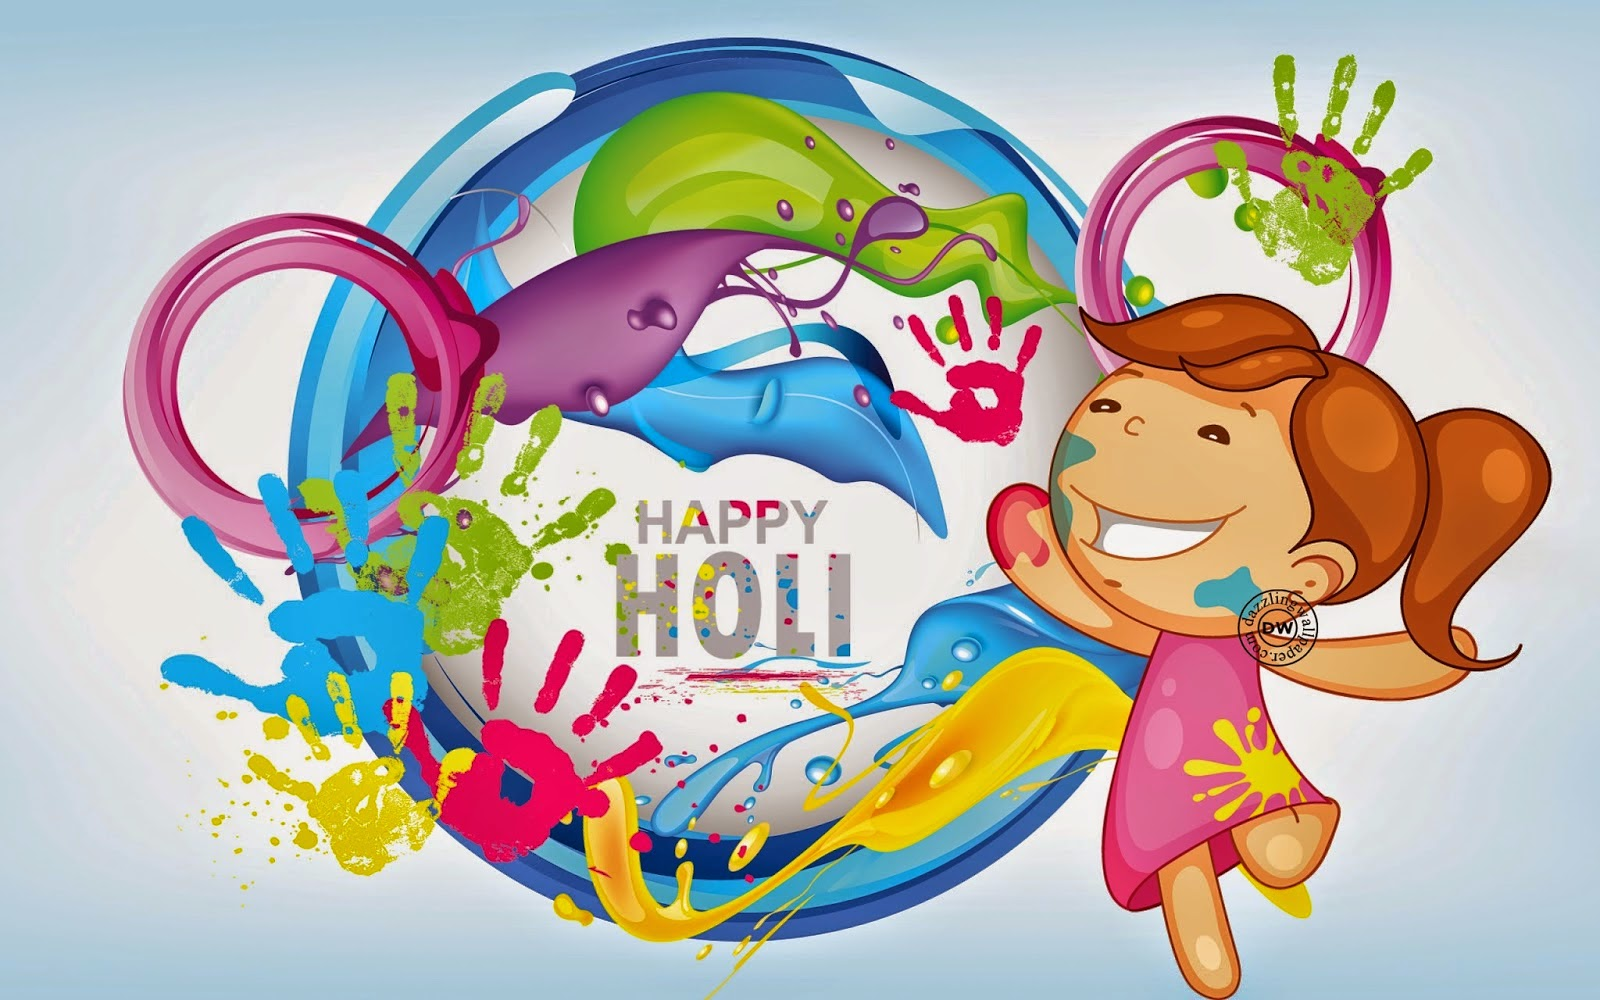 Happy holi 2015 wallpapers images greetings wishes sms quotes this is one of the best and latest holi 2015 greeting cards wishes quotes sms latest for you to send and wish your friends and known ones happy holi m4hsunfo